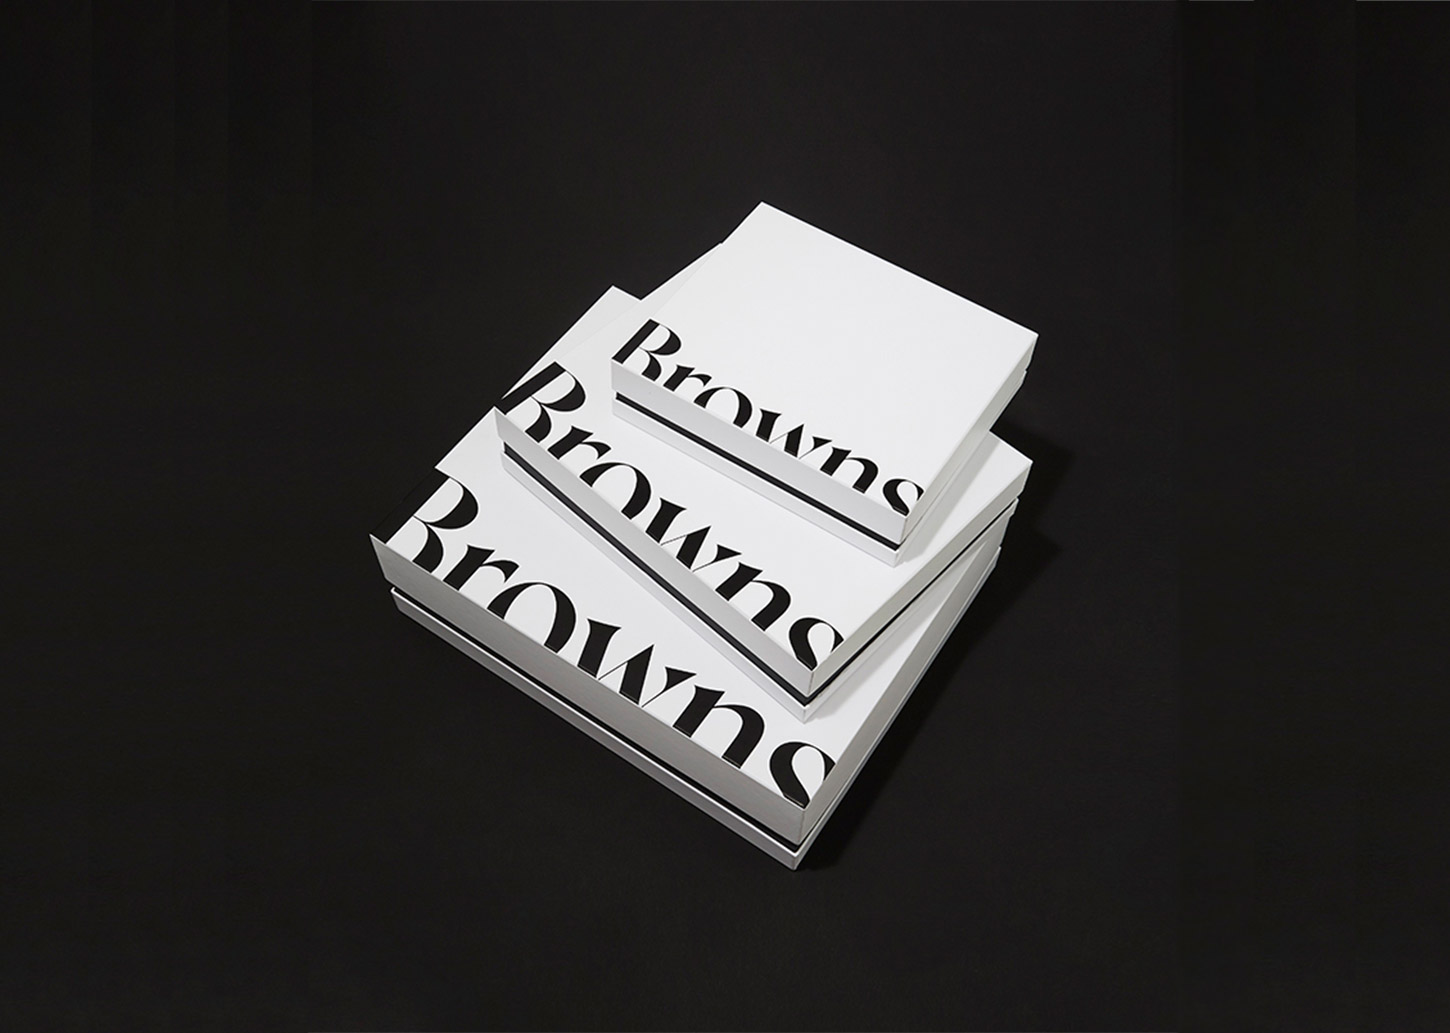 scratch card promotion - Browns gift box logo redesign